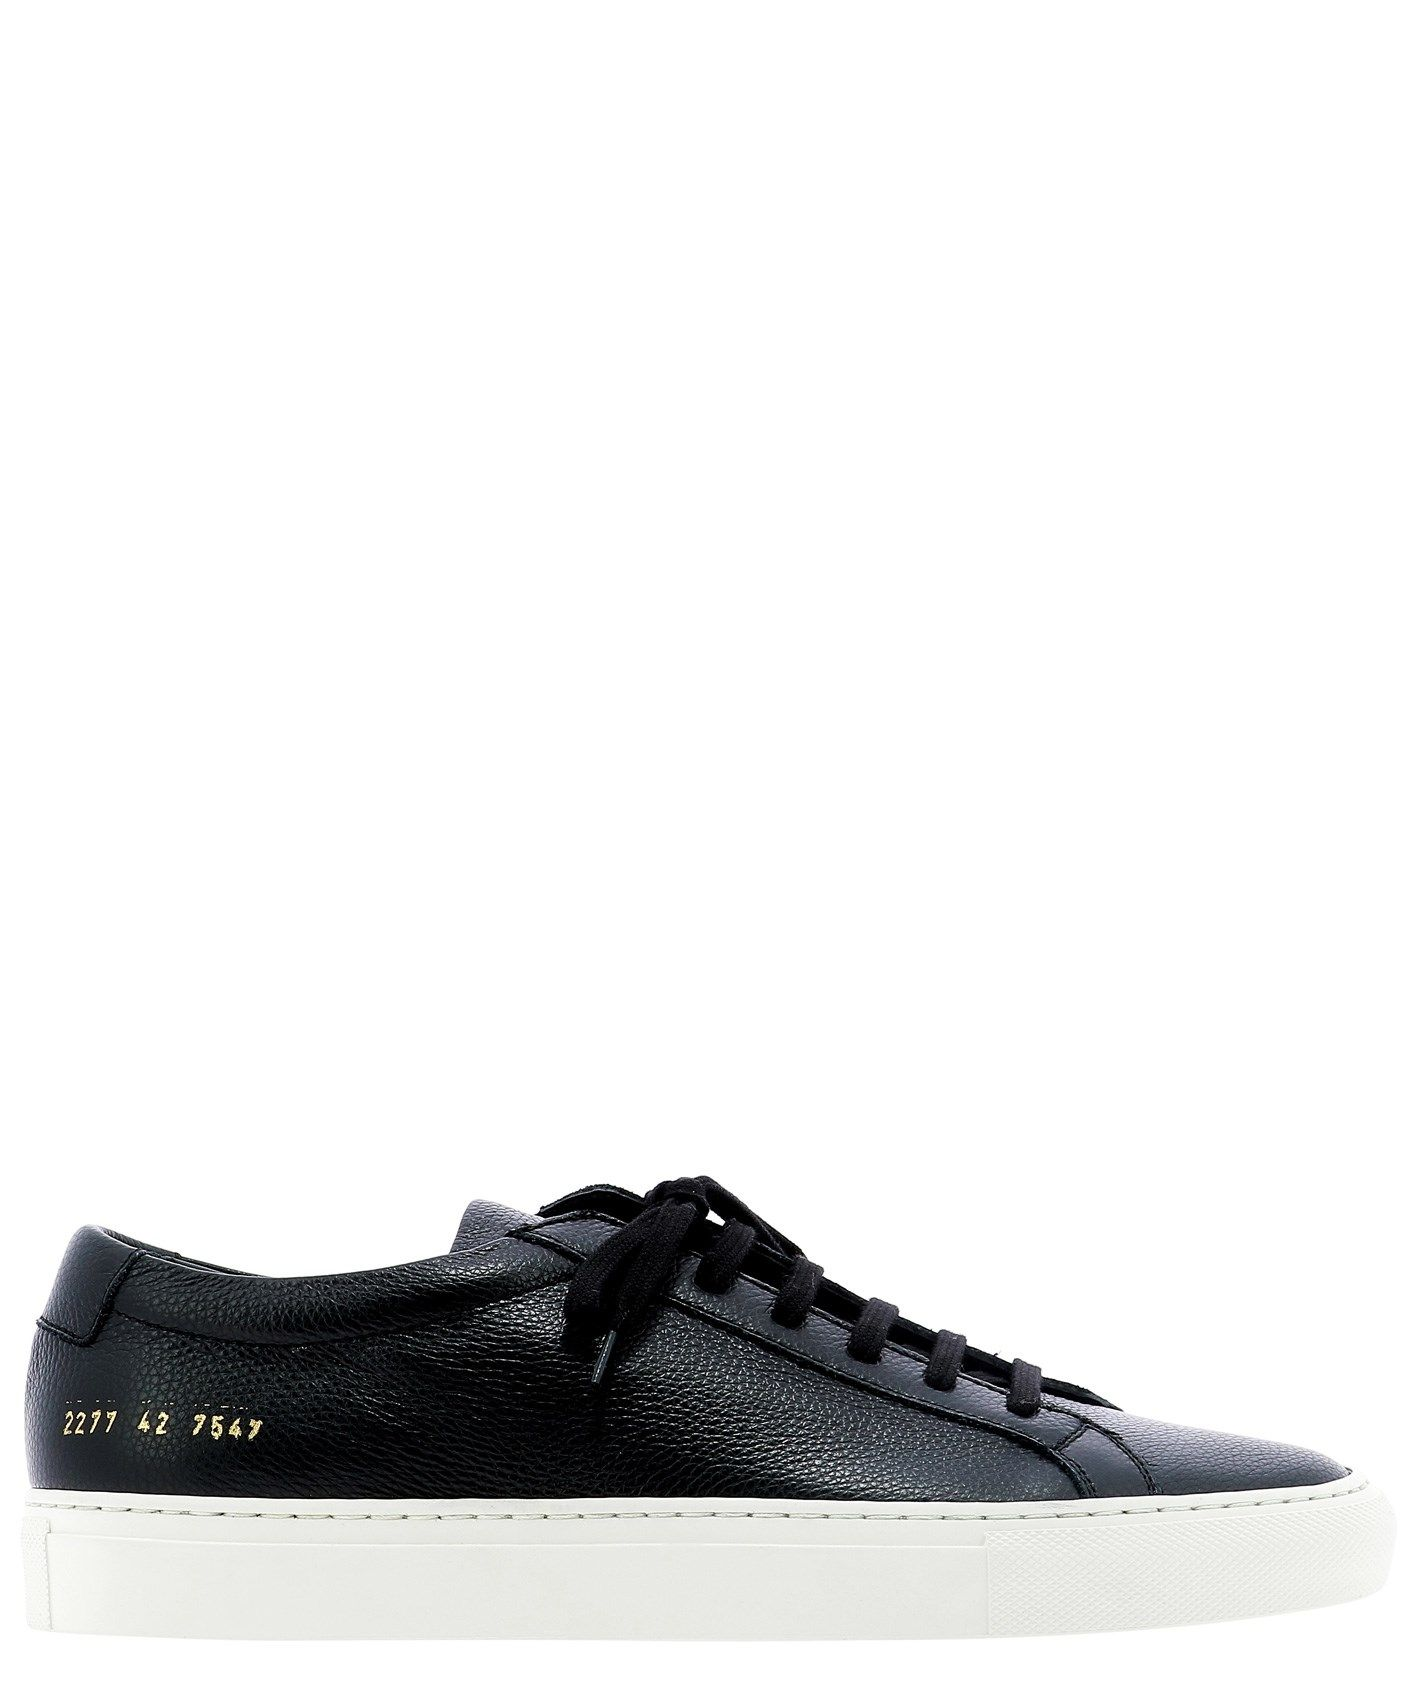 Common Projects COMMON PROJECTS MEN'S BLACK LEATHER SNEAKERS